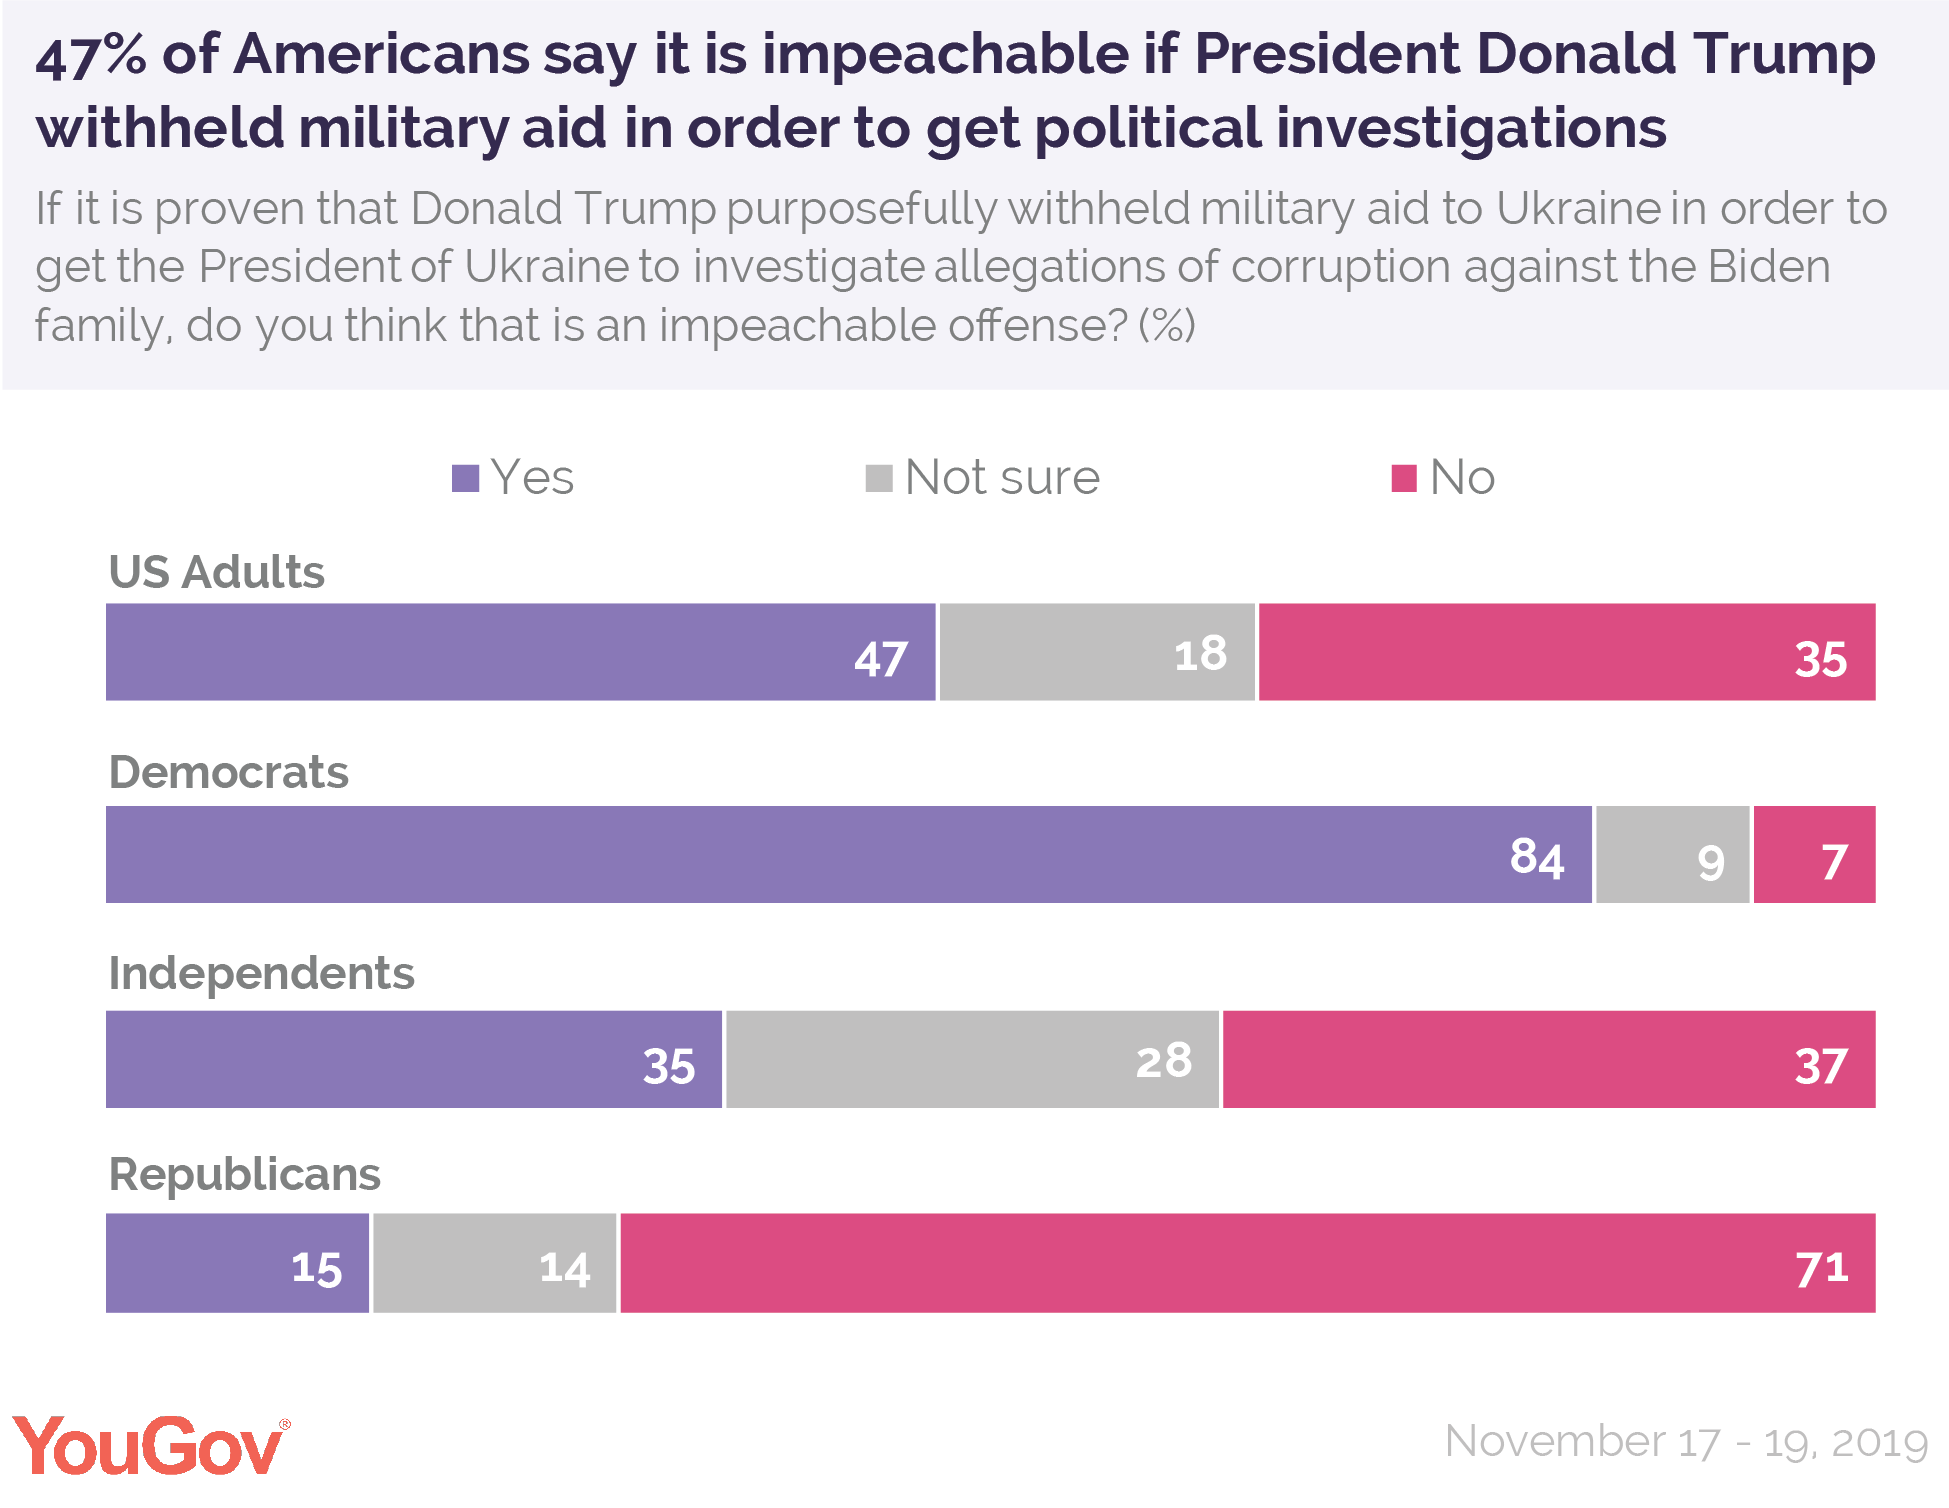 47% of Americans say it is impeachable if President Donald Trump withheld military aid in order to get political investigations